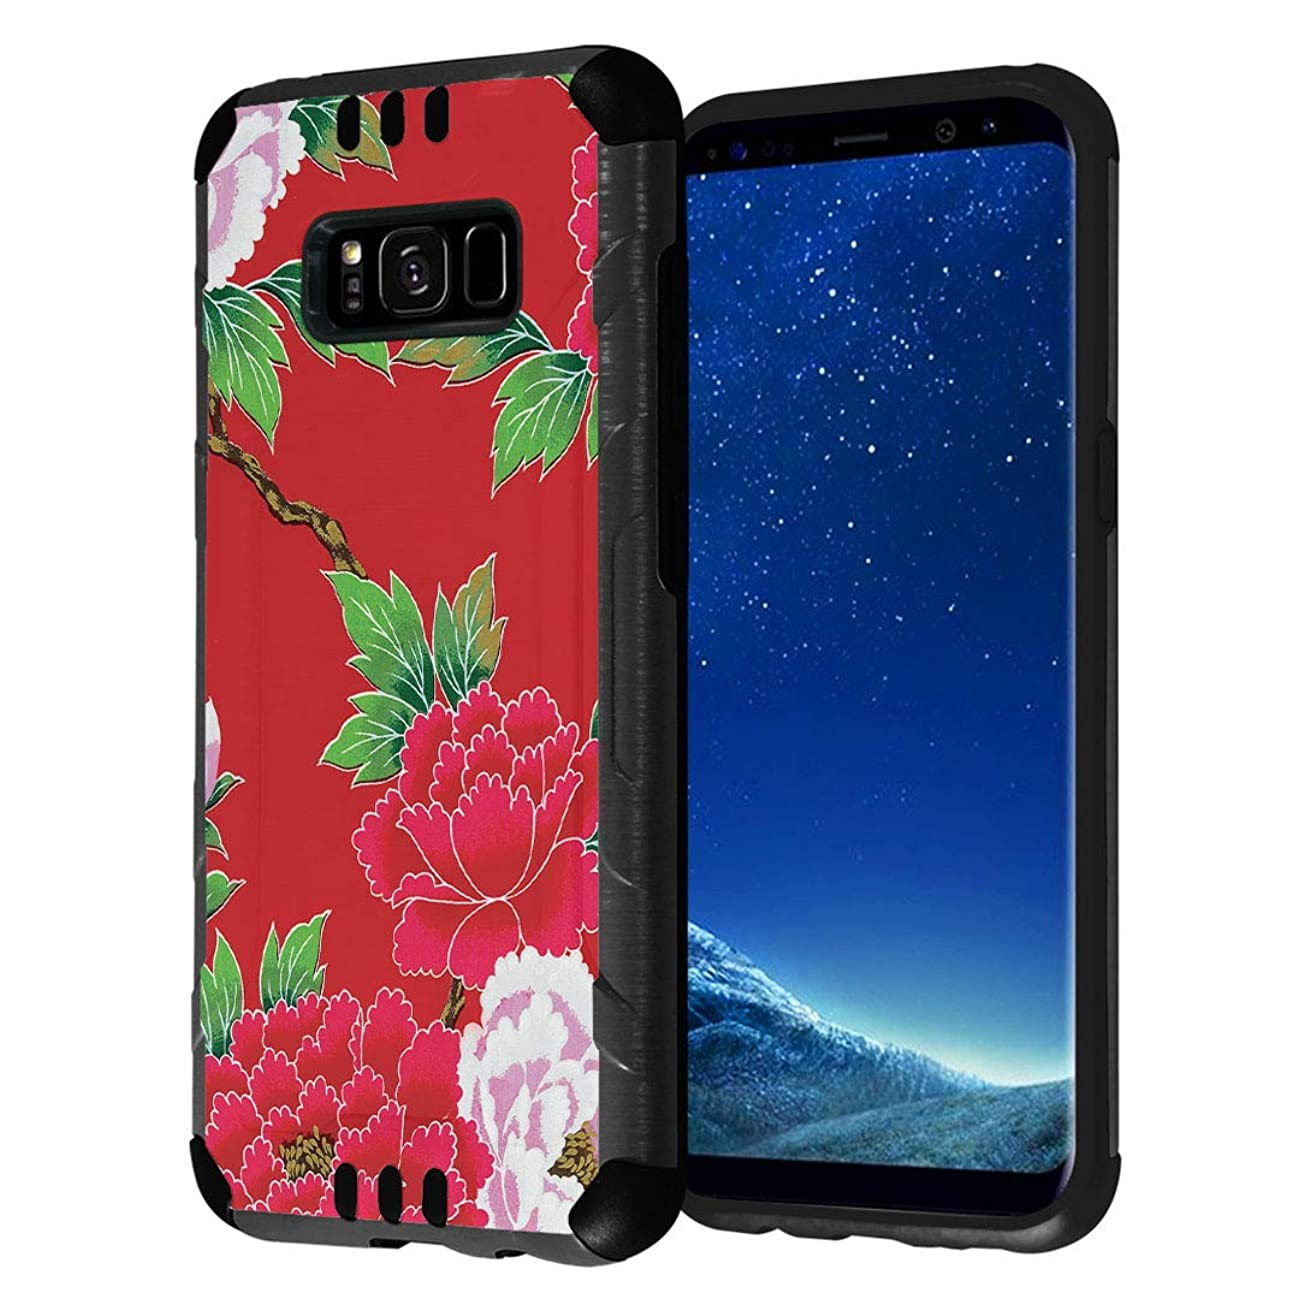 Capsule Case Compatible with Galaxy S8 [Hybrid Fusion Dual Layer Slick Armor Cushion Case Black] for Samsung Galaxy S8 SM-G950 SPHG950 - (Vermilion Red Flower)